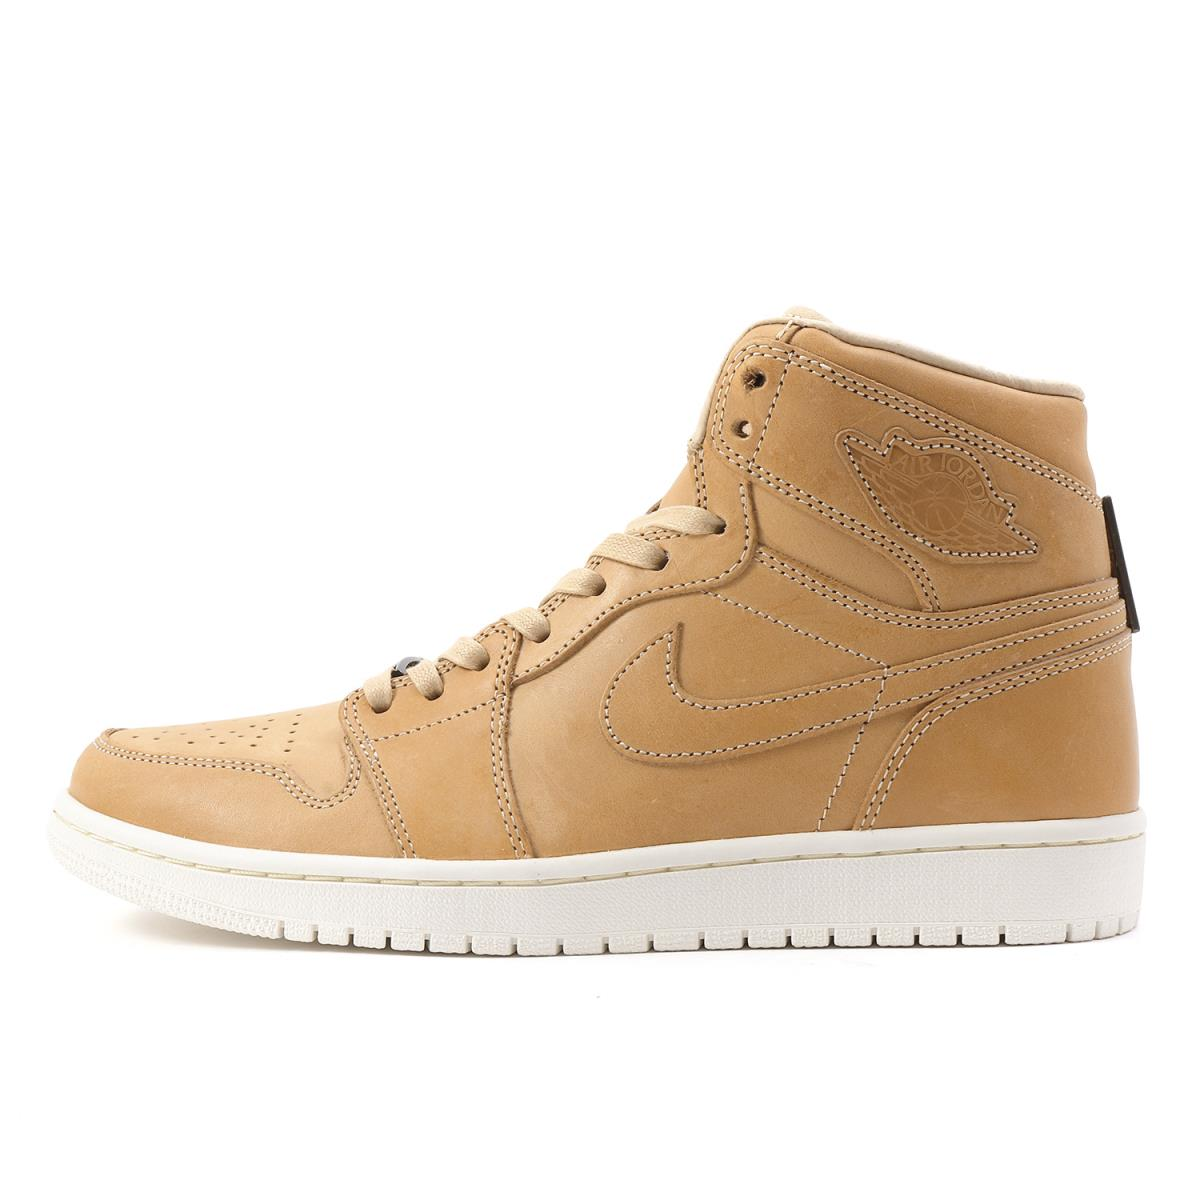 official photos 35bb1 e5ce6 NIKE (Nike) AIR JORDAN 1 PINNACLE VACHETTA TAN (705,075-201) バケッタタン X sail  US10.5(28.5cm)